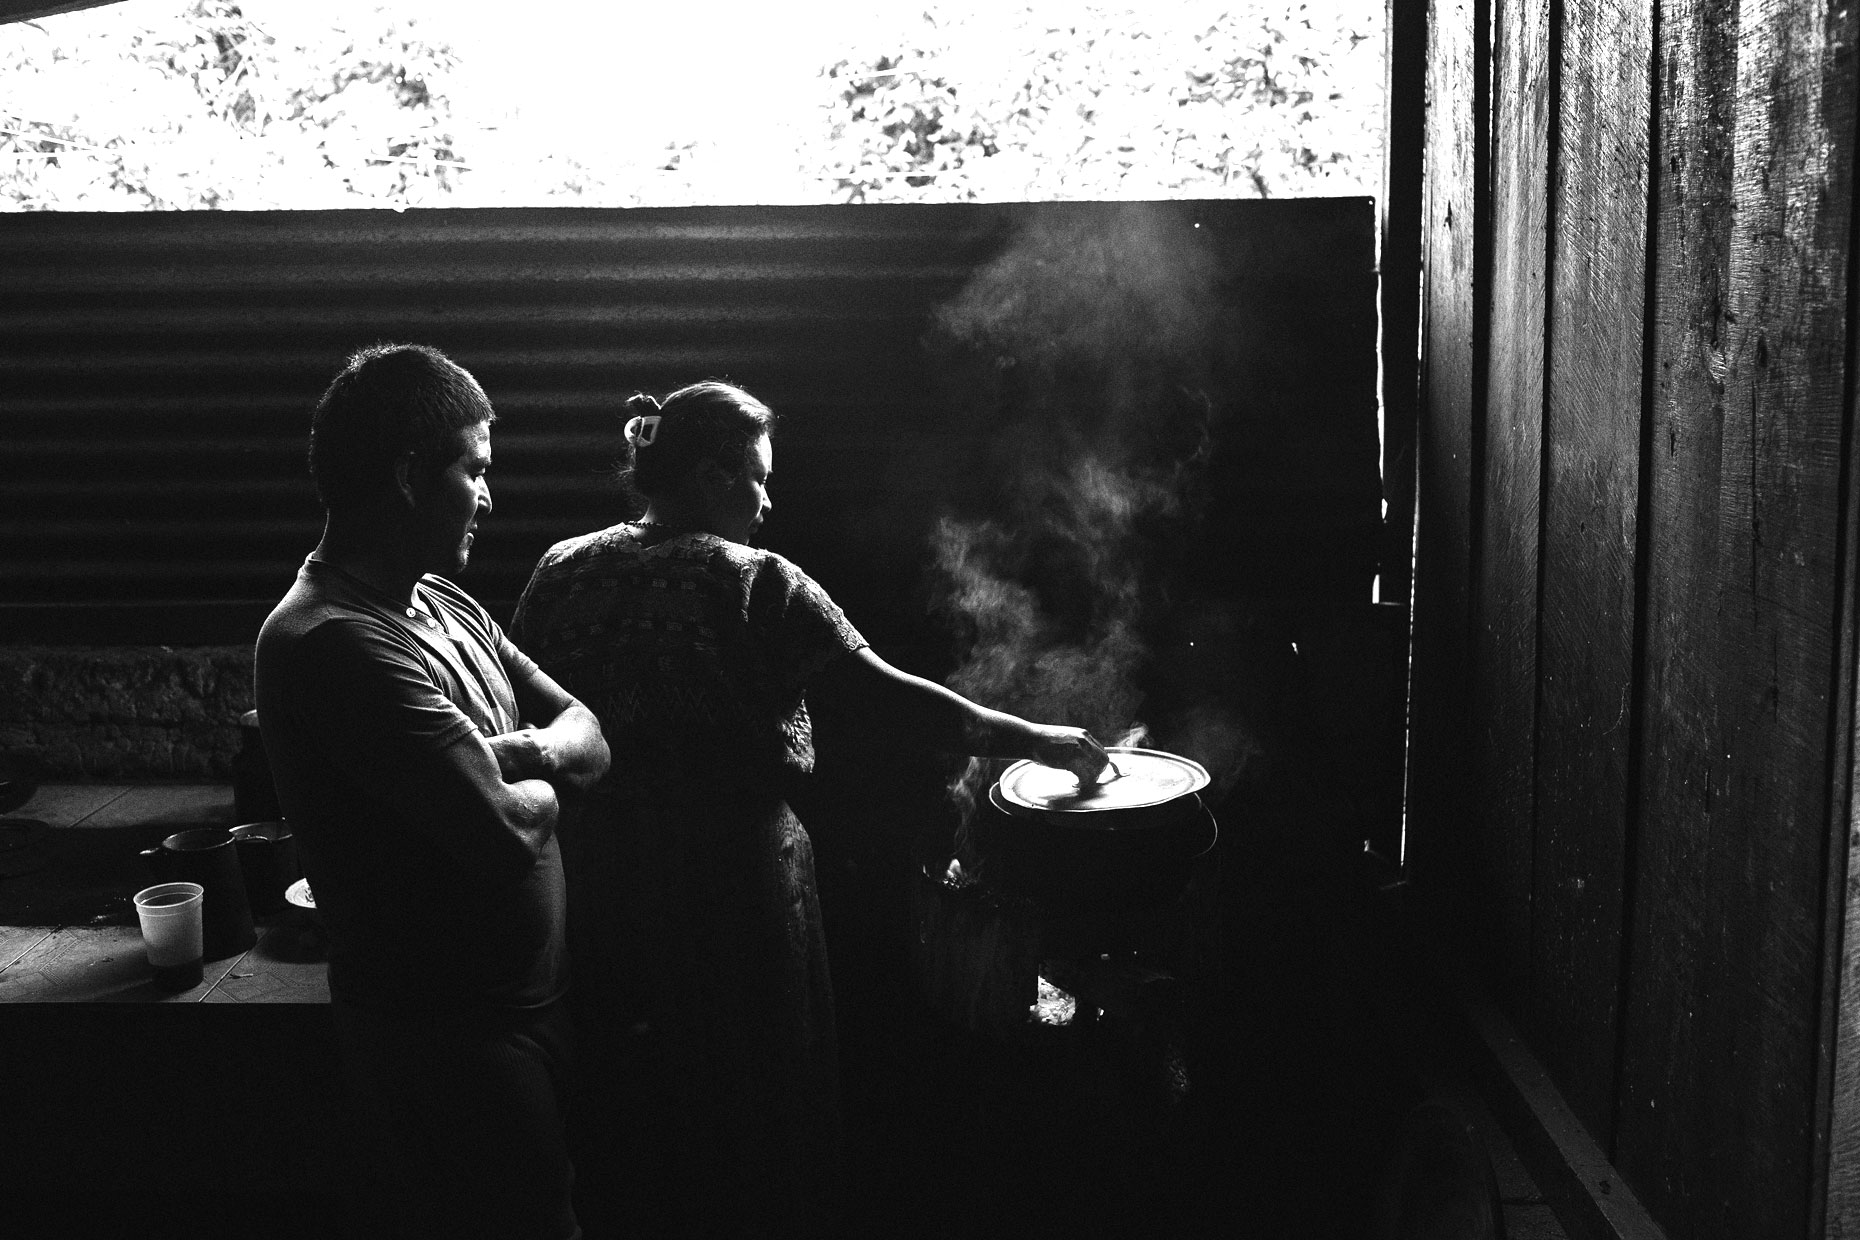 Guatemalan family cooking in kitchen